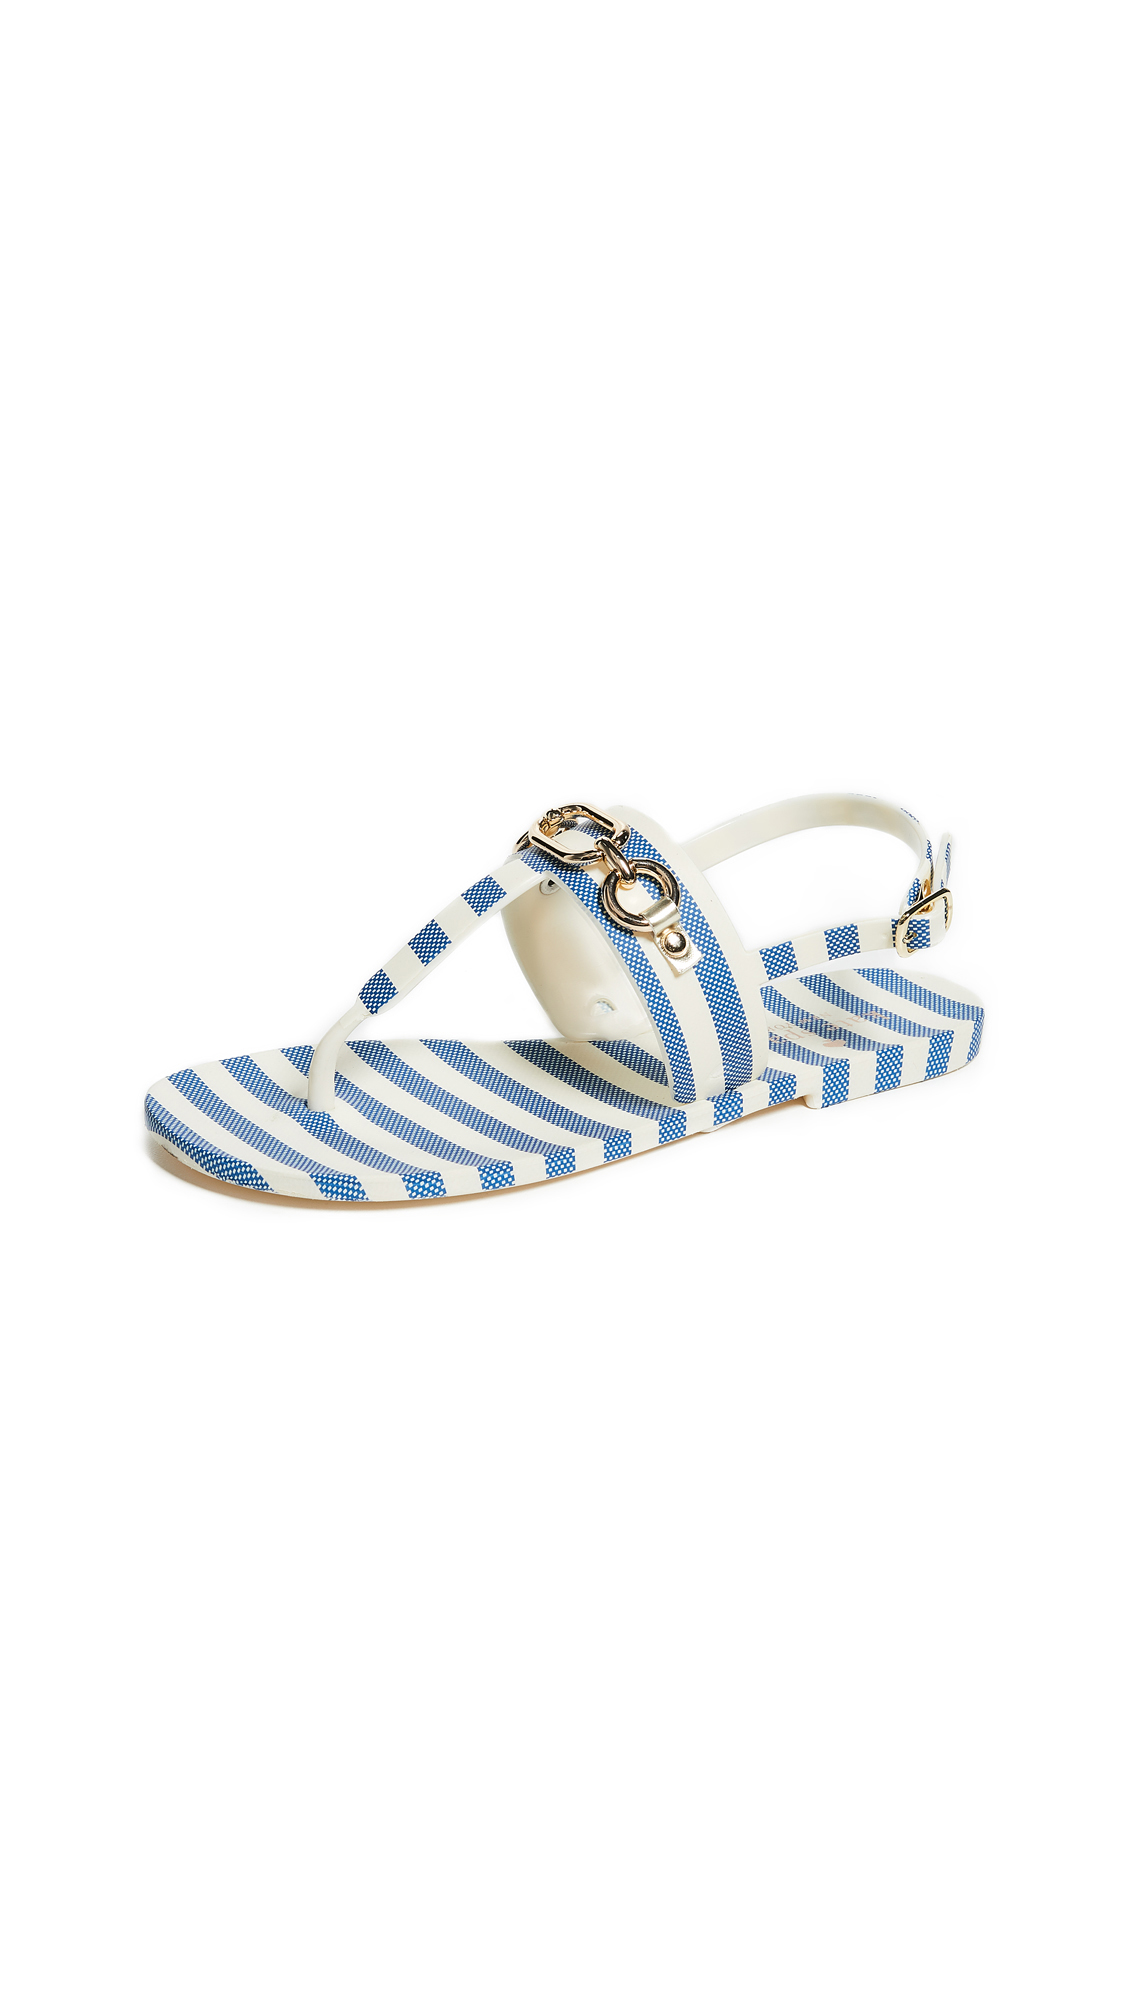 Kate Spade New York Polly Striped Sandals - Blue/Cream